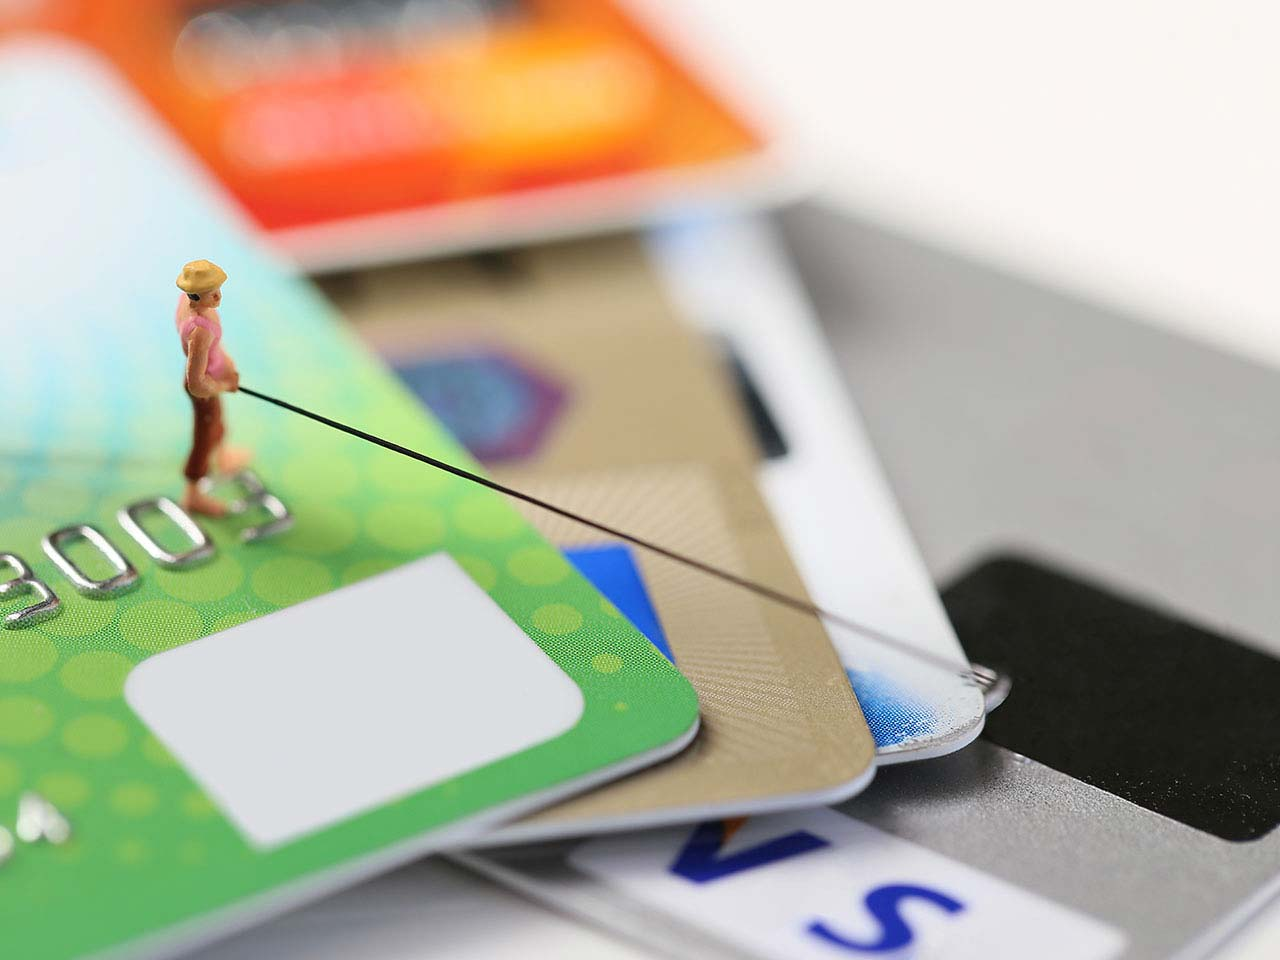 Model figure fishing and standing on credit cards